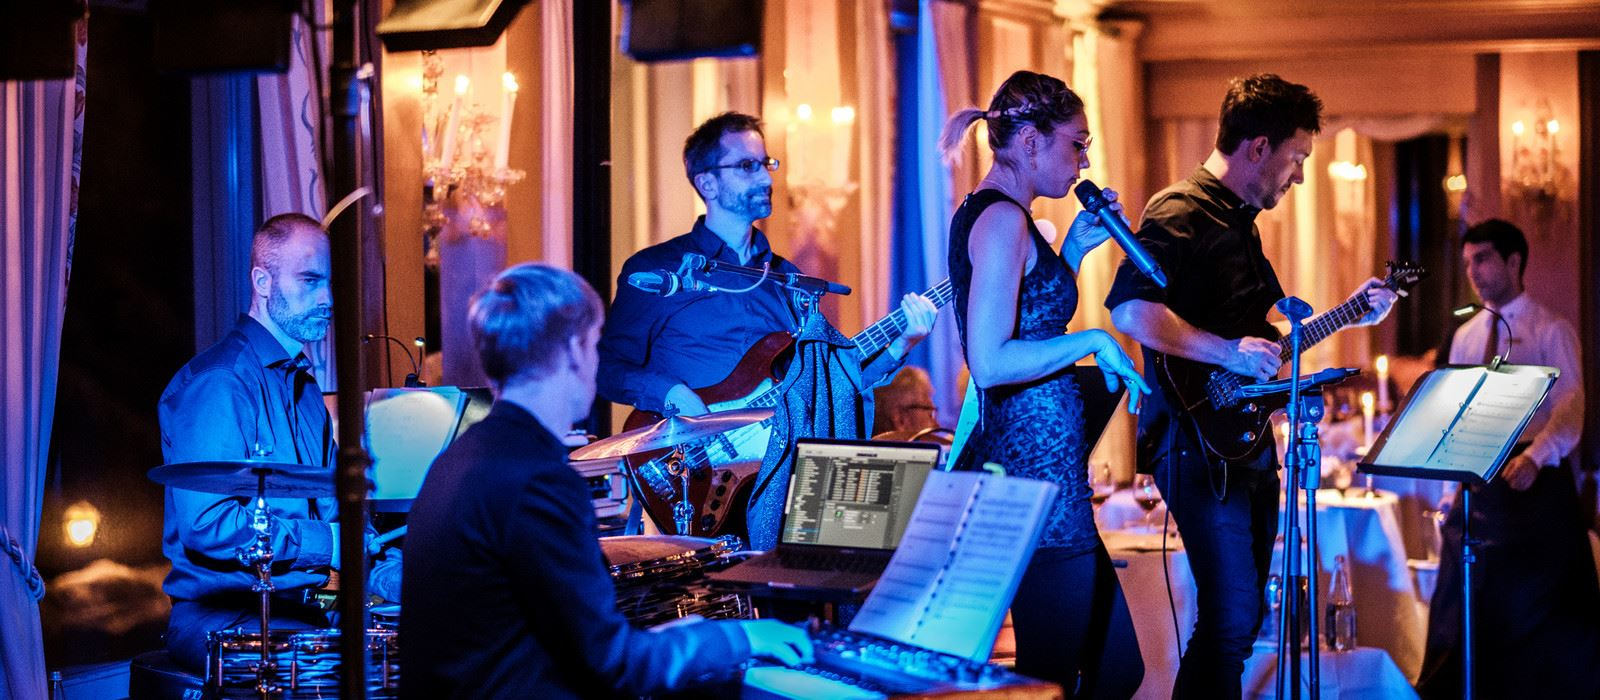 Tschuggen Grand Hotel_Events_Liveband in der Bar